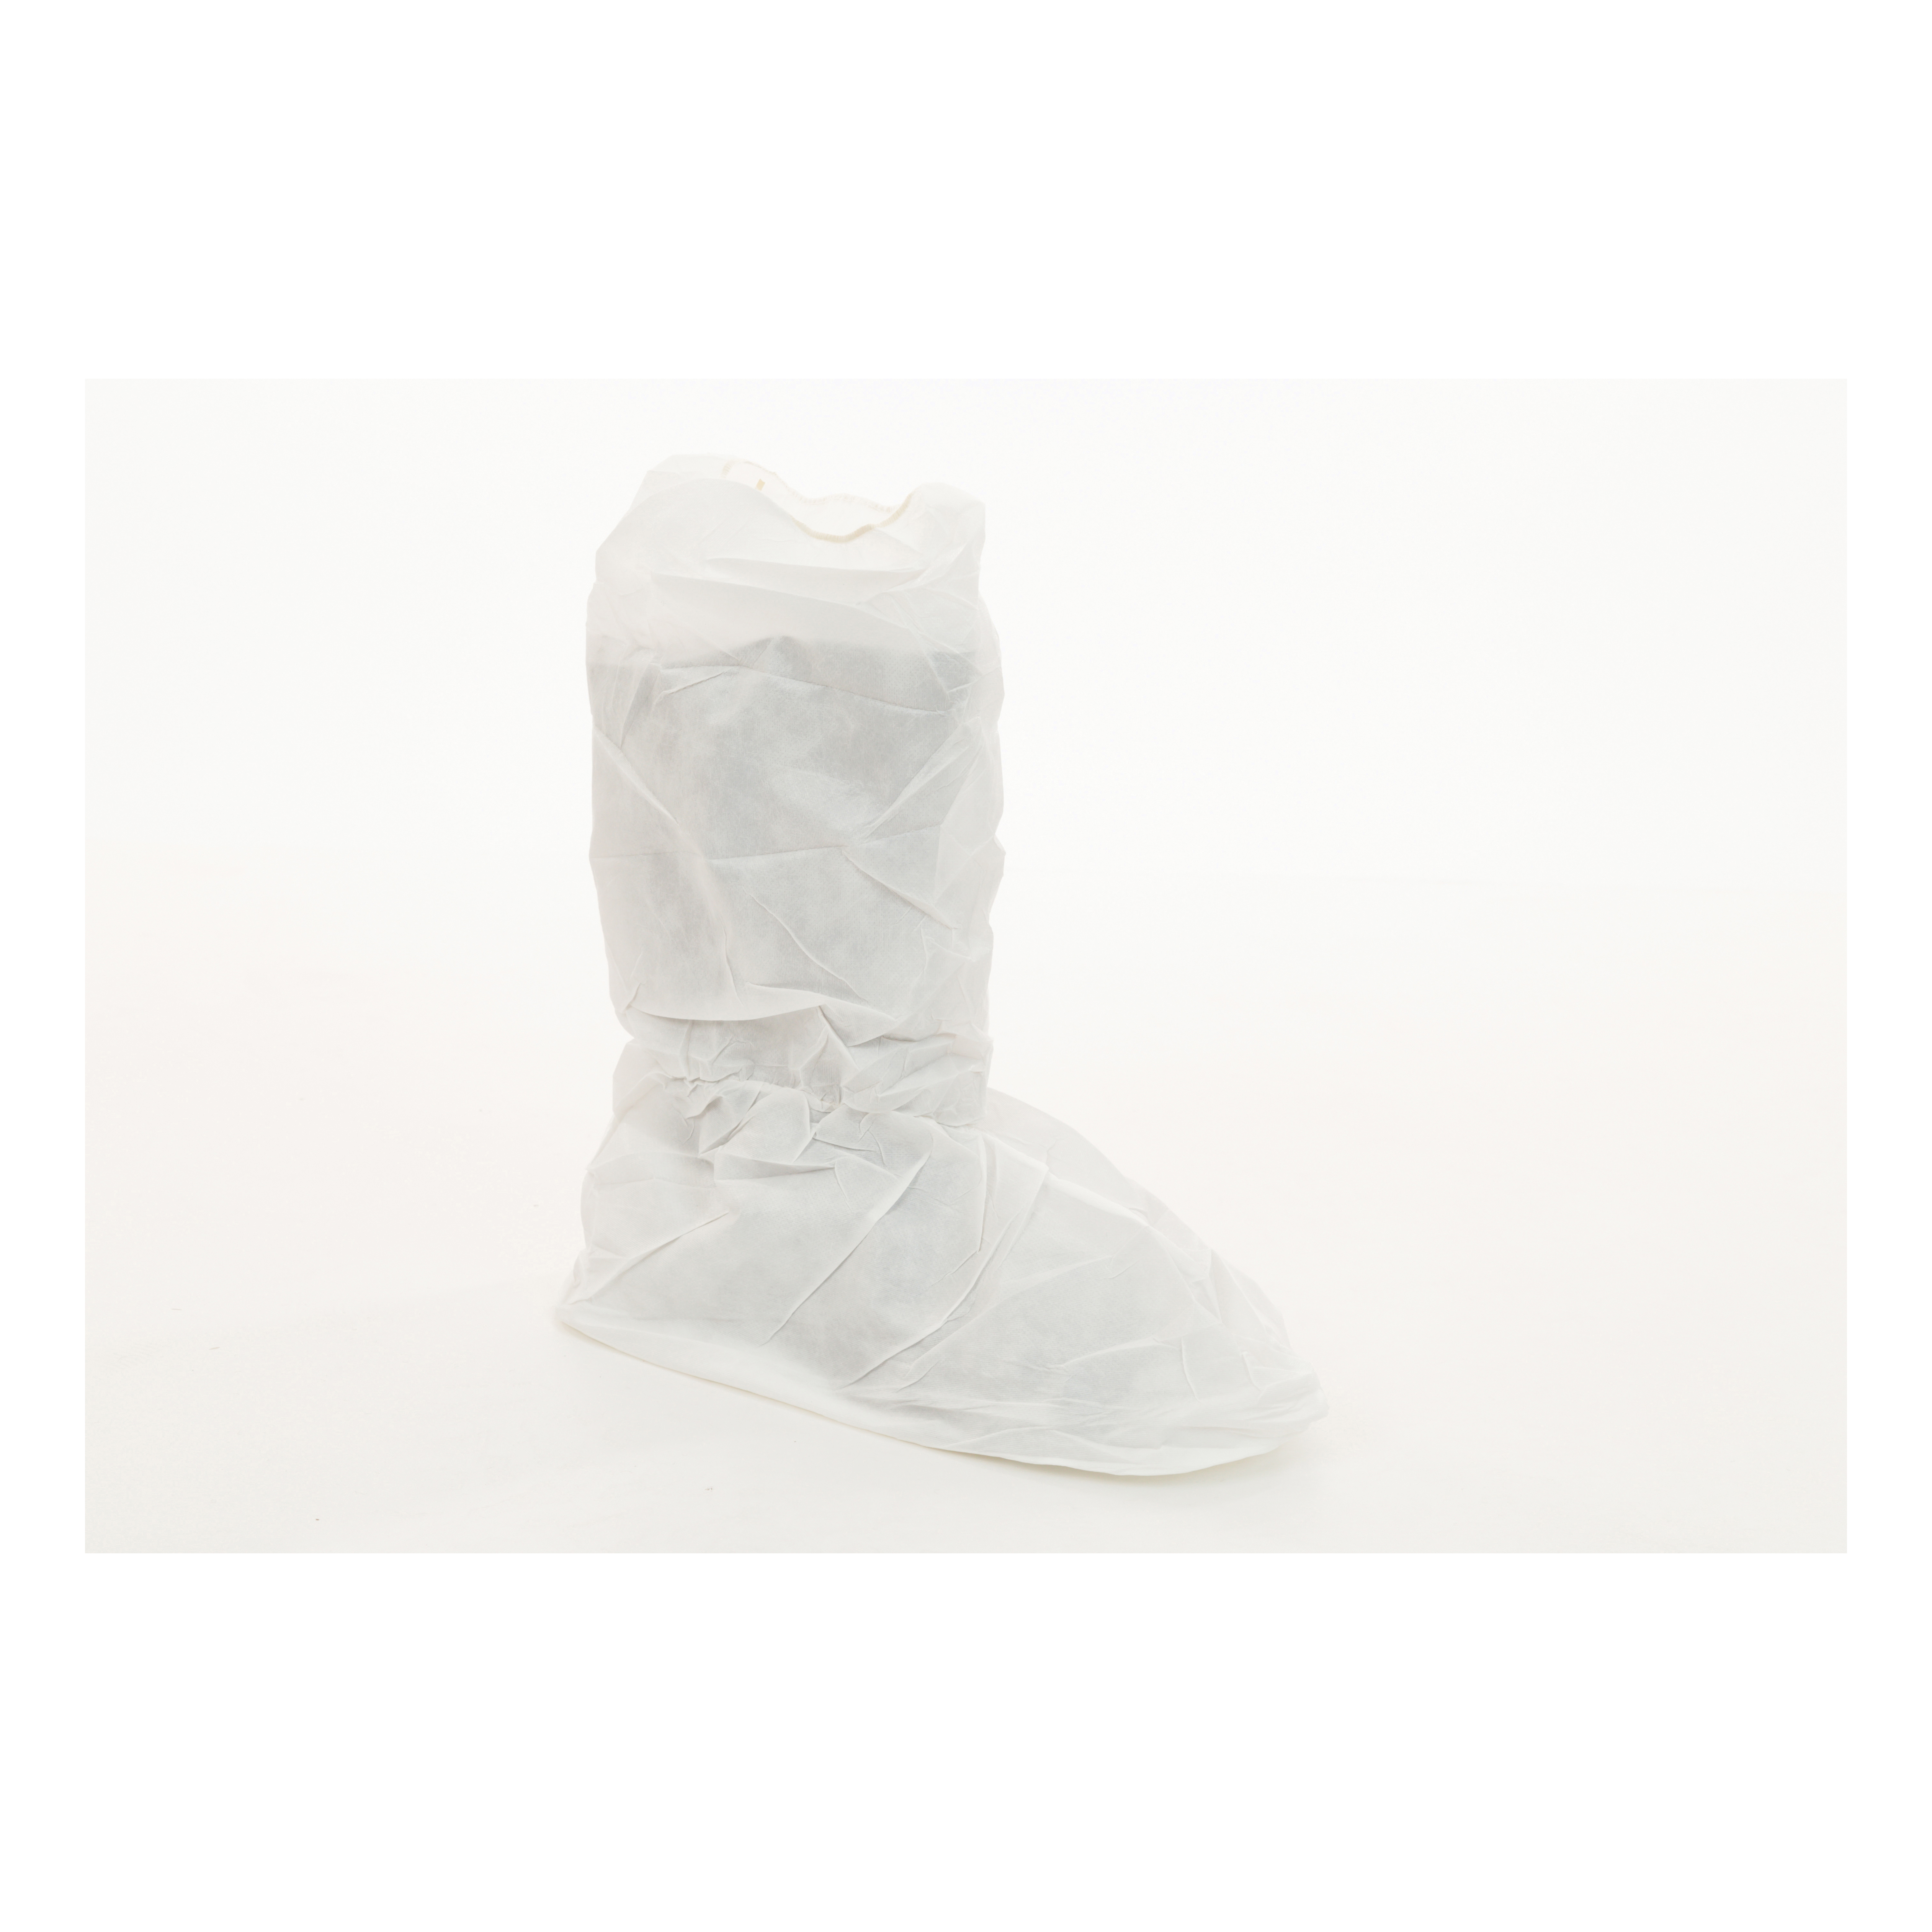 MicroGuard CE® CE8104-BP Clean Processed Shoe Cover With Vinyl Sole, Unisex, L Fits Shoe, White, Elastic Closure, Microporous Fabric Outsole, Resists: Tear, Specifications Met: ASTM T903, INDA IST 100.2, AATCC 127, CPSC 1610, GB/T 12074-1991